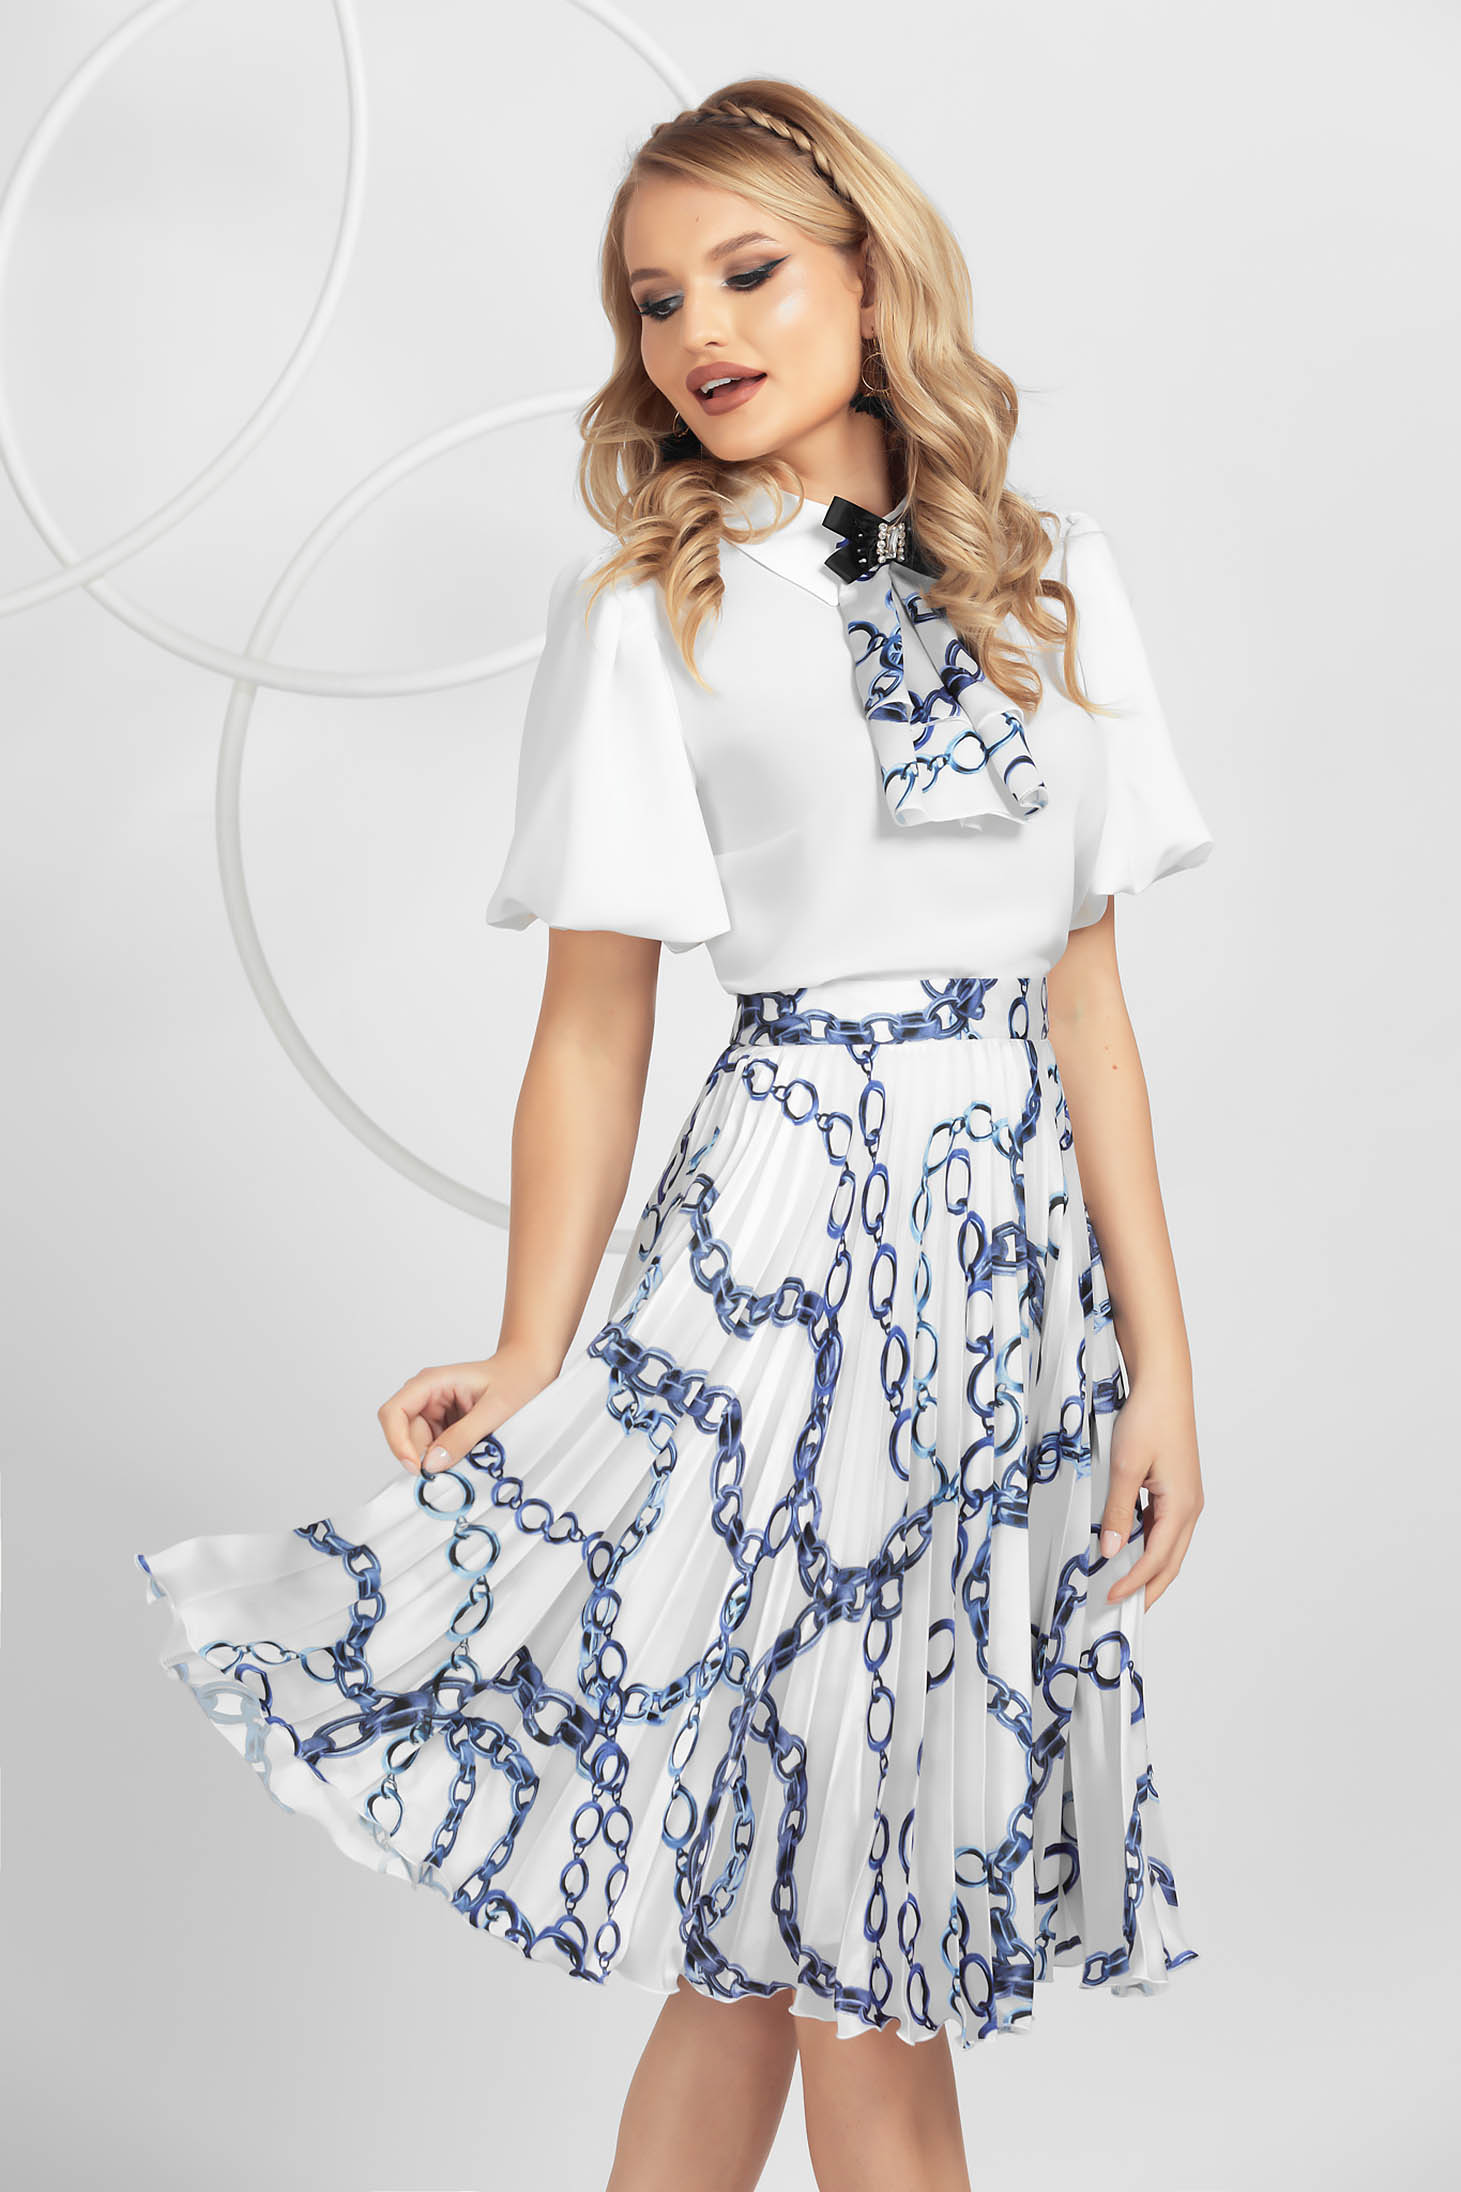 Blue skirt airy fabric with floral print with elastic waist pleats of material